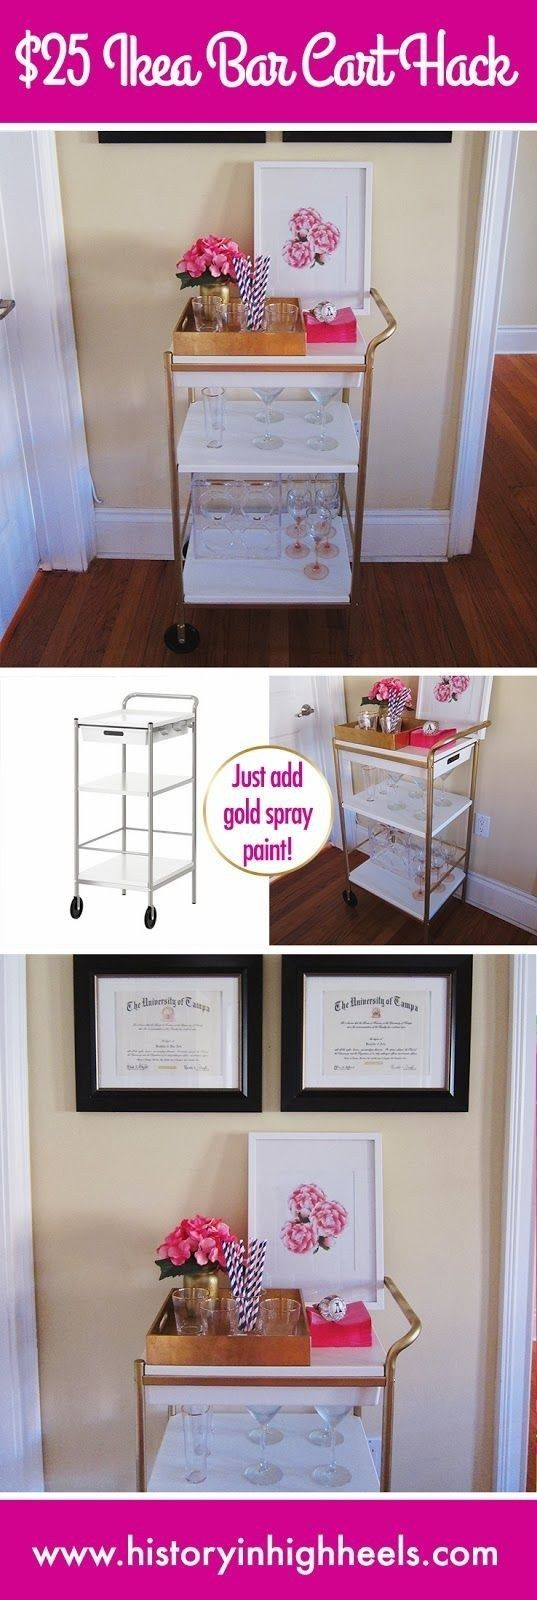 Gold spray paint comes to the rescue again if you own the Bygel utility cart ($29.99).